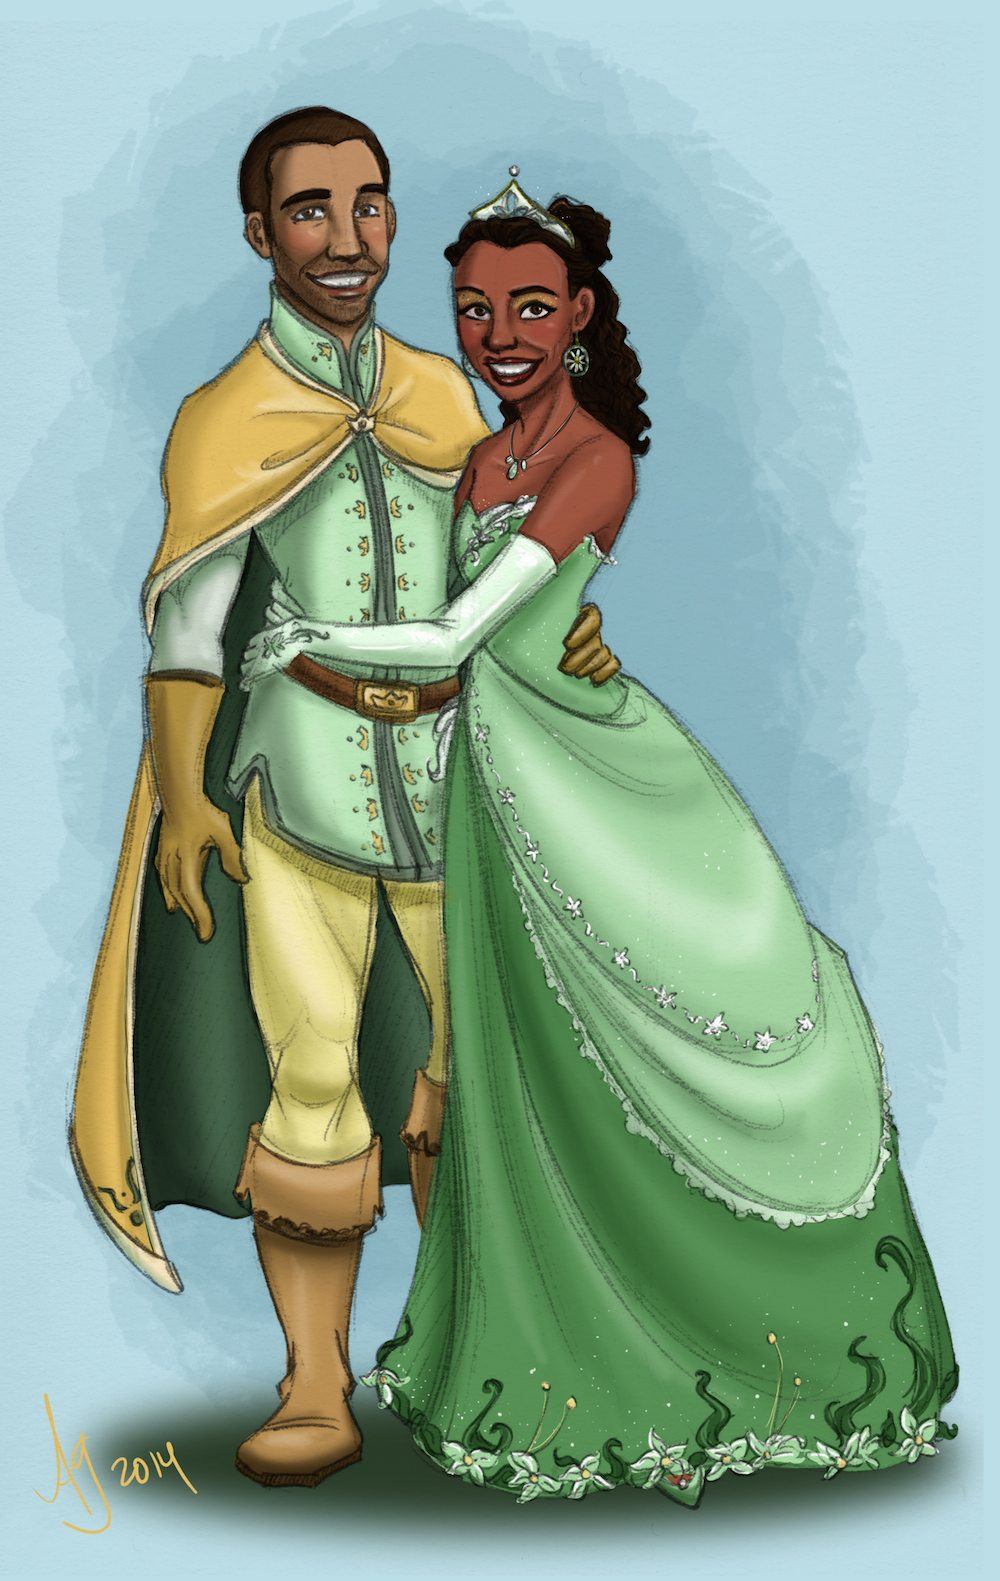 Portrait of a Prince and Princess by Drew Graham via ArtCorgi